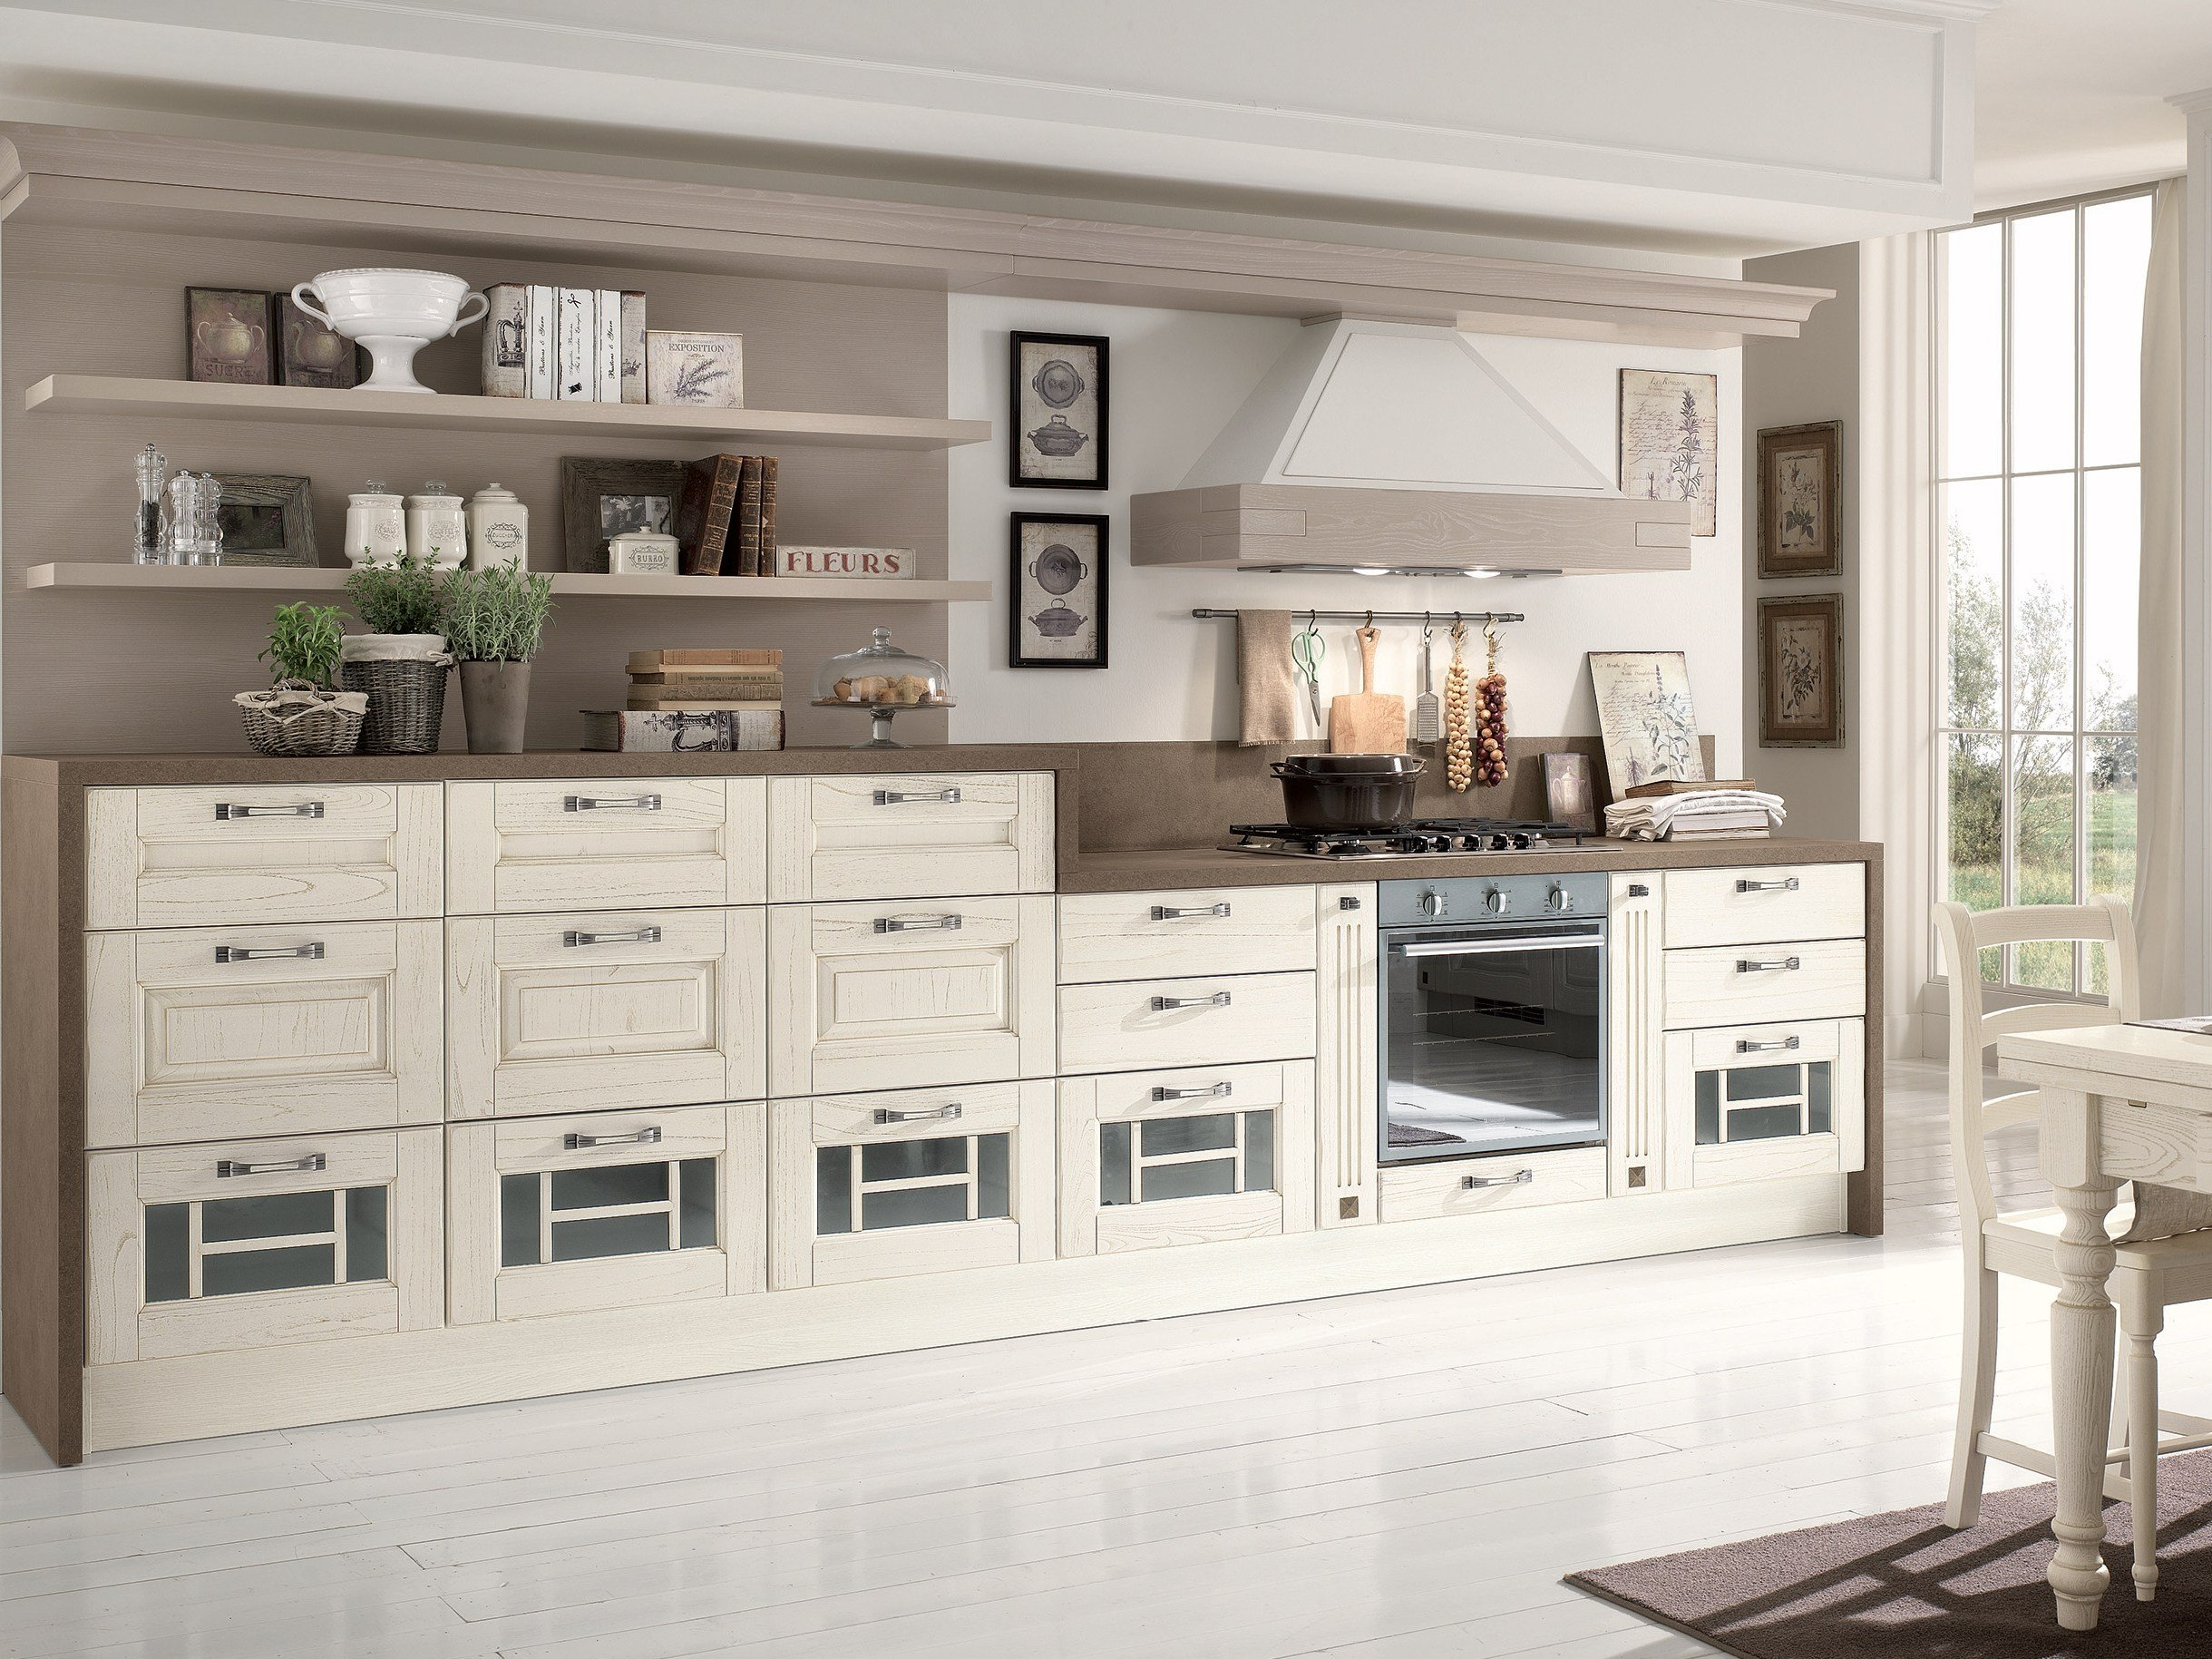 LAURA | Walnut kitchen By Cucine Lube